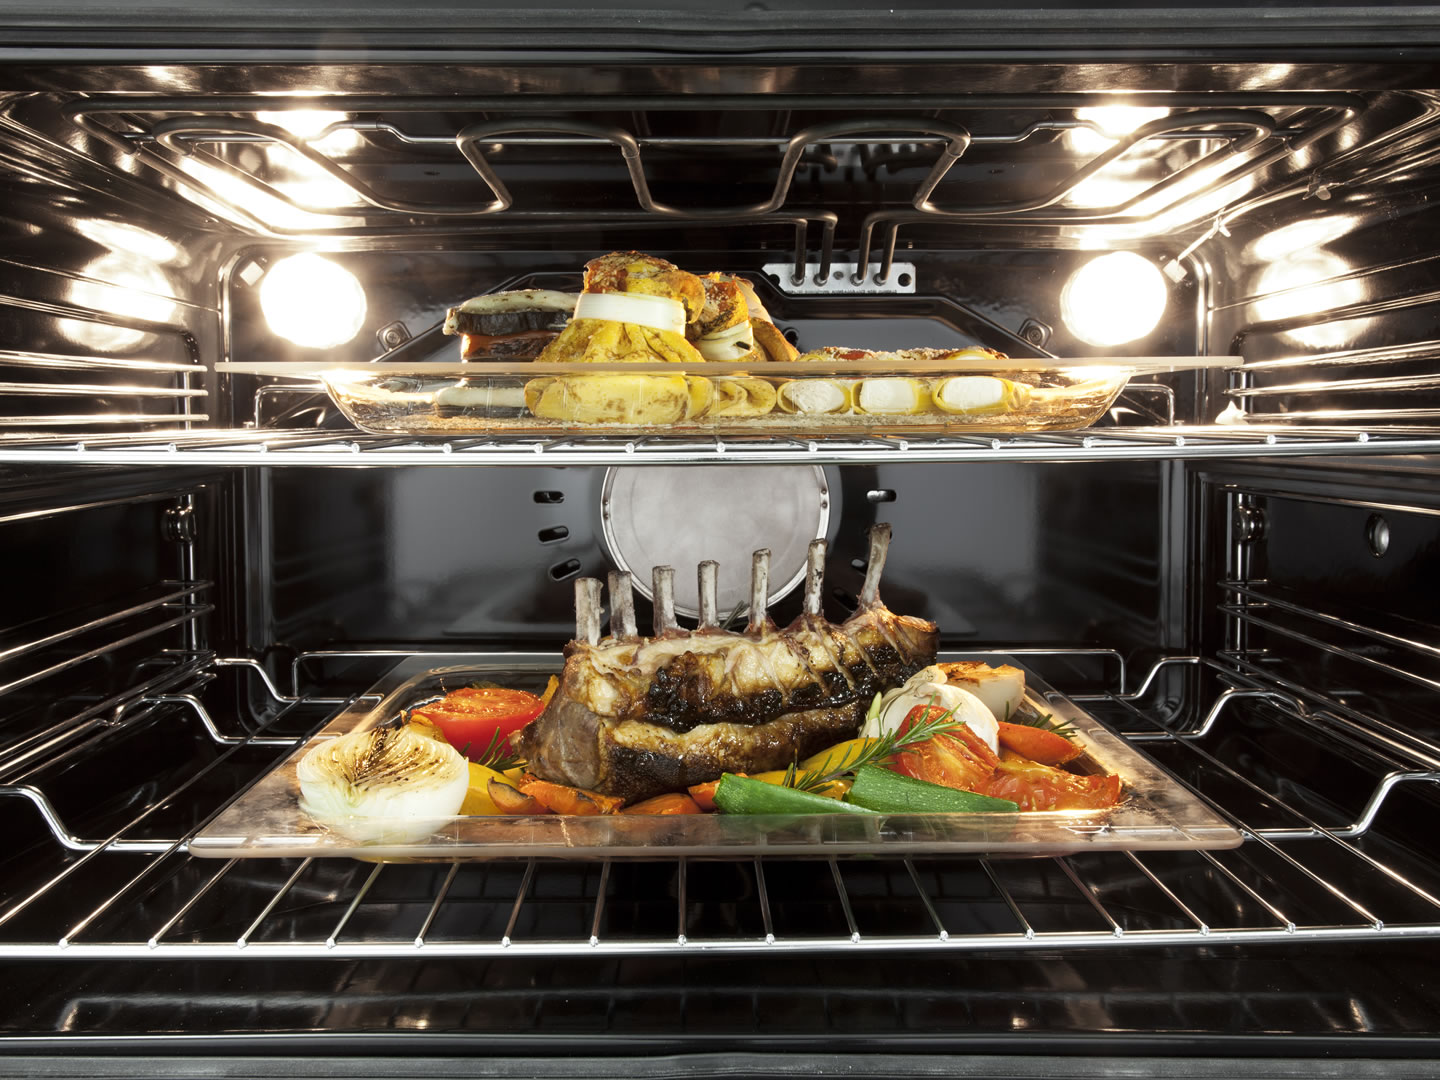 DEP909M - 90cm 9 Function Built In Premium Oven Interior